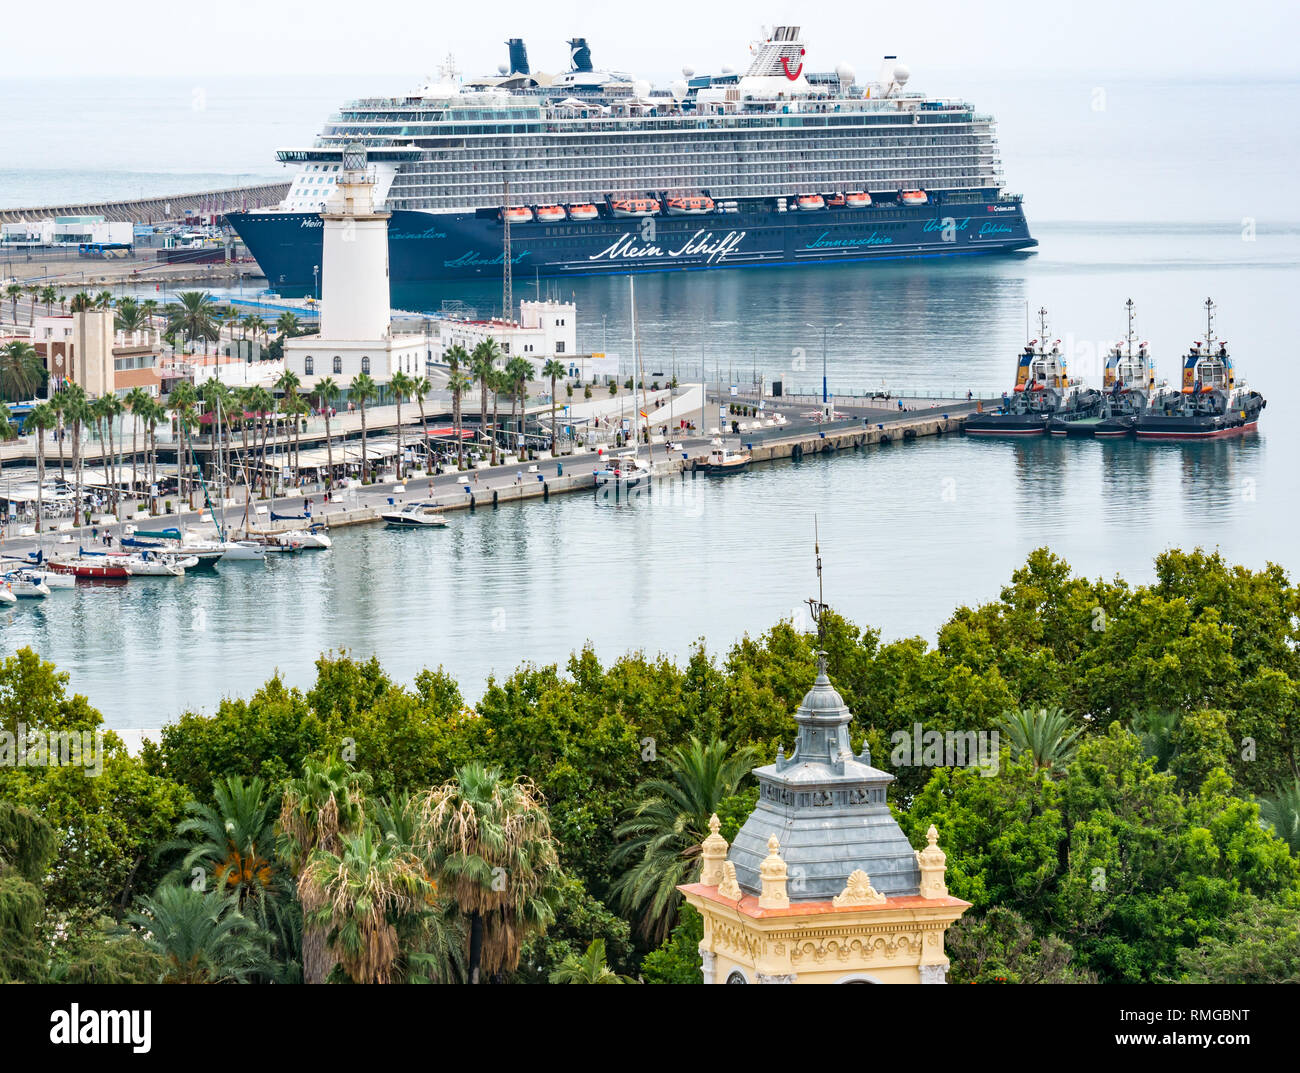 Malaga harbour seen from above. German tourist passenger ship Mein Schiff in port, Malaga, Andalusia, Spain - Stock Image